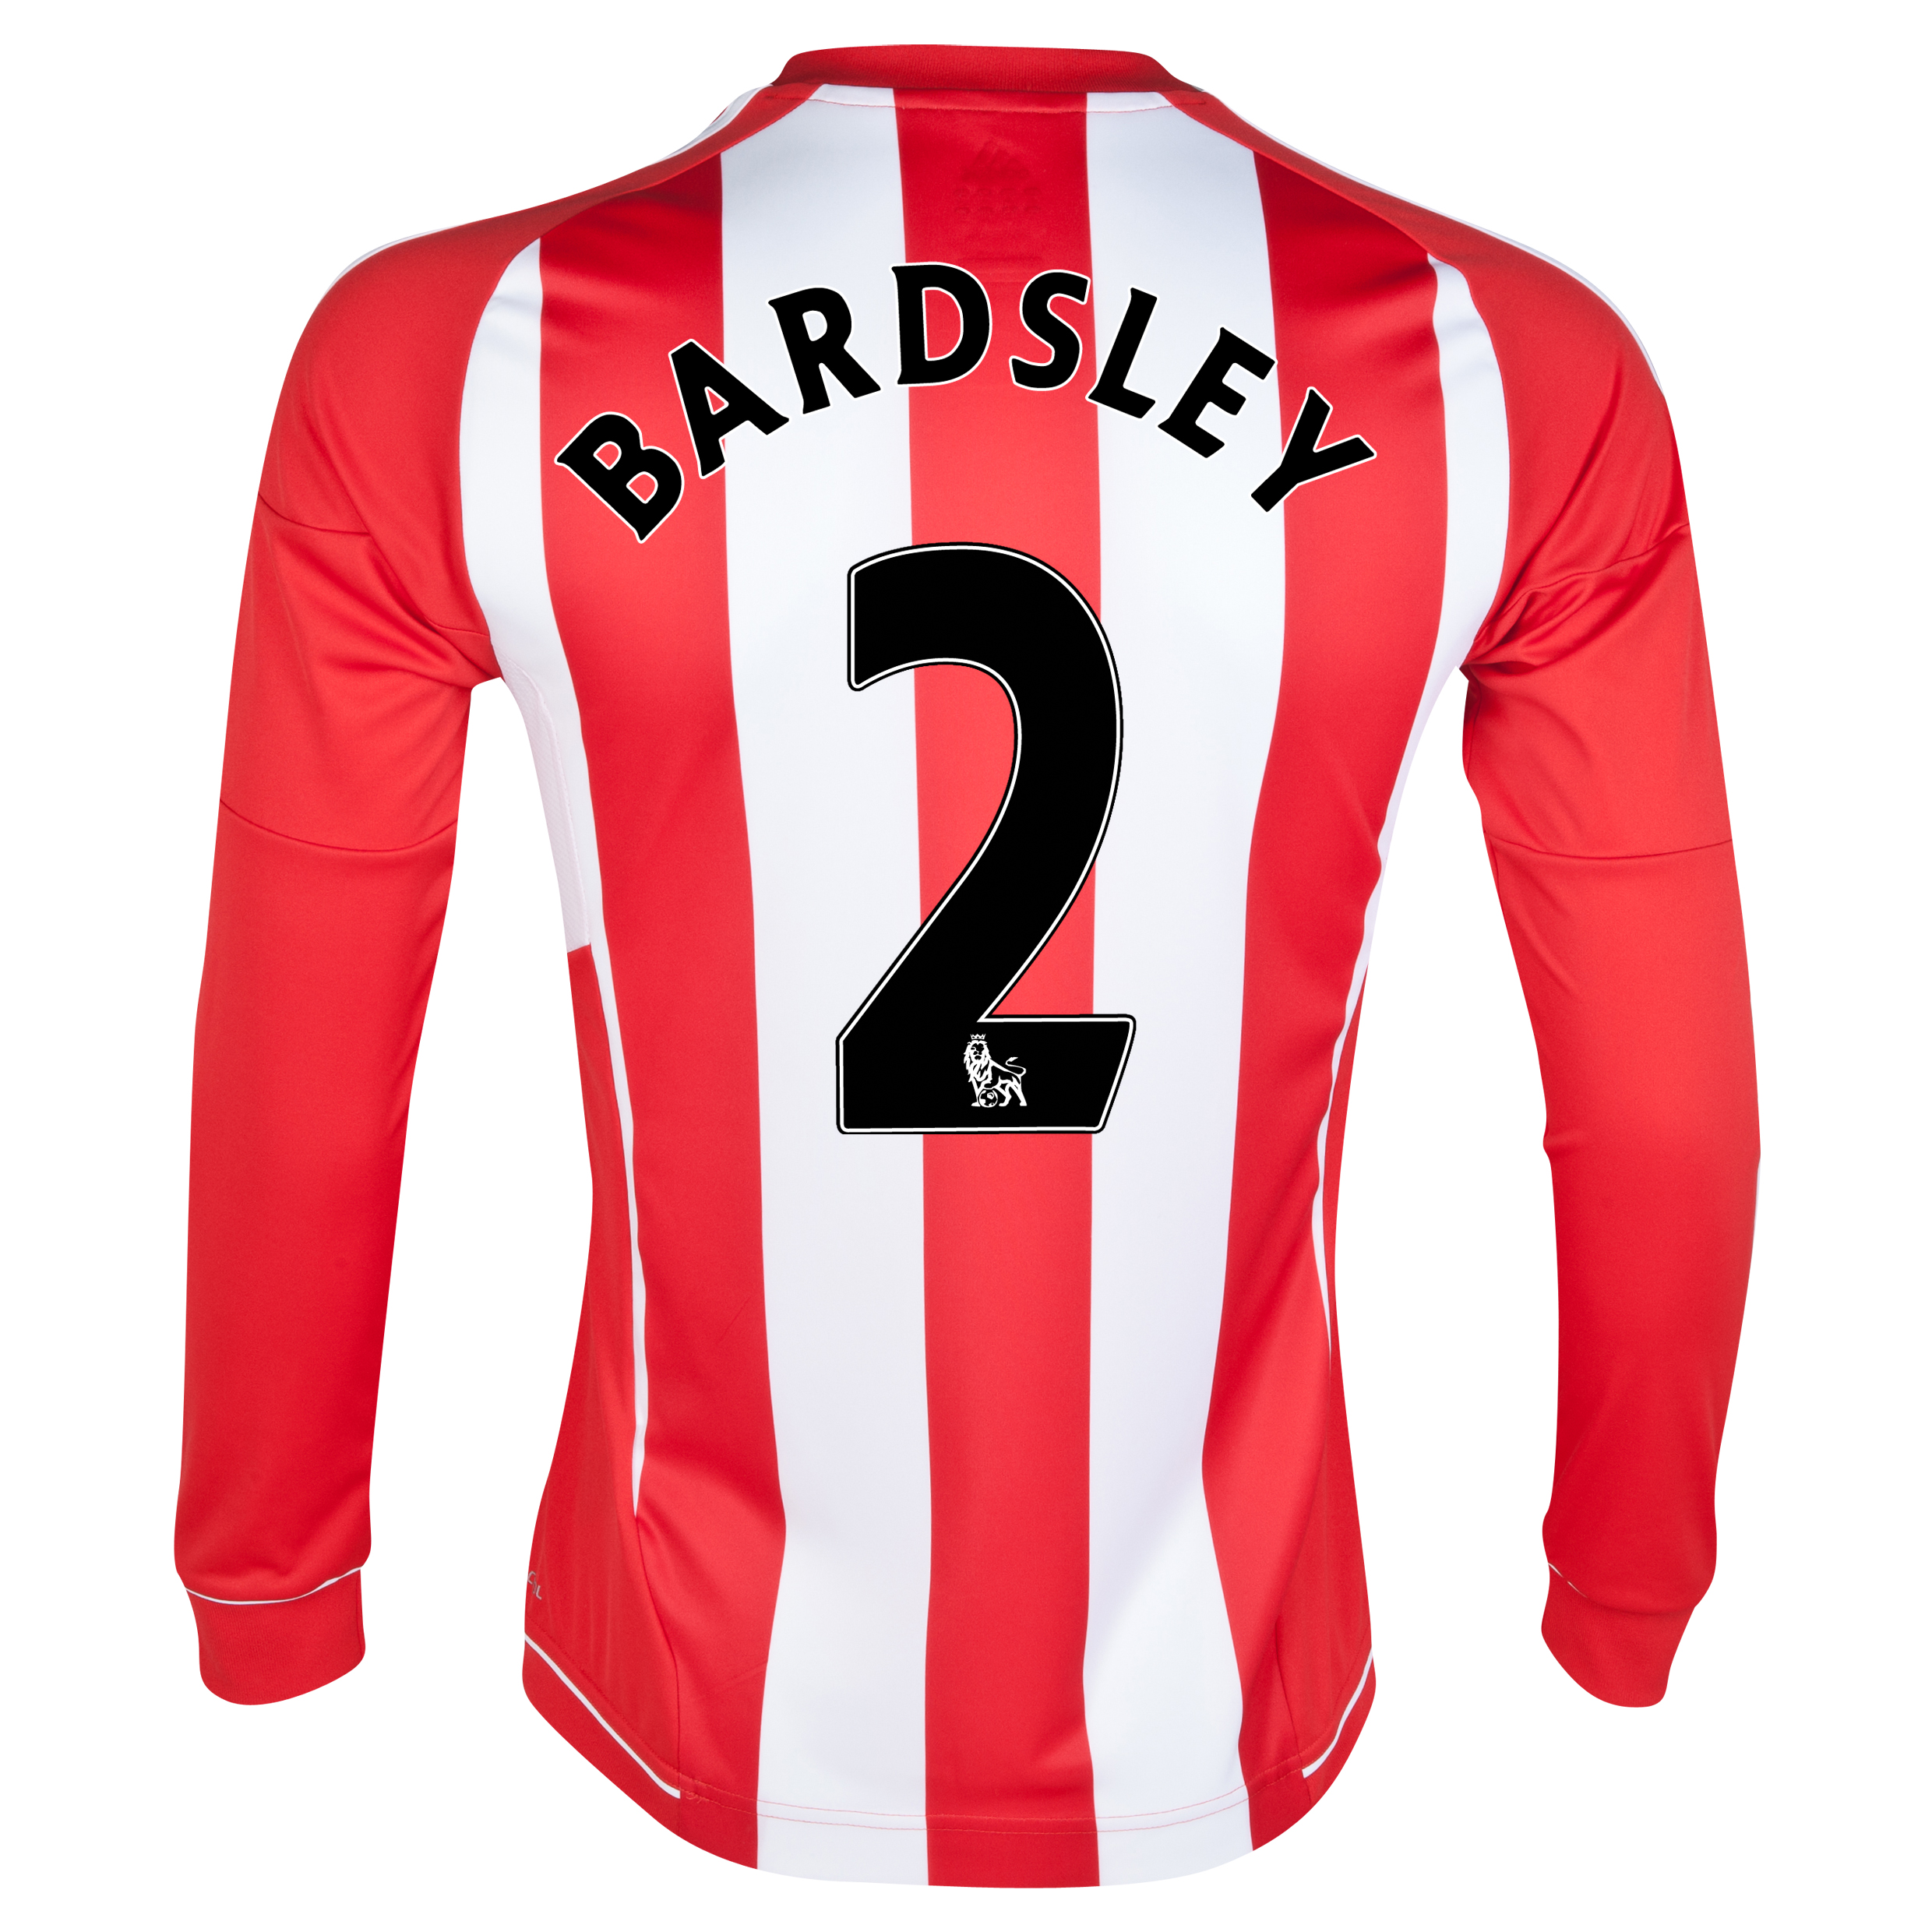 Sunderland Home Shirt 2012/13 - Long Sleeved - Junior with Bardsley 2 printing